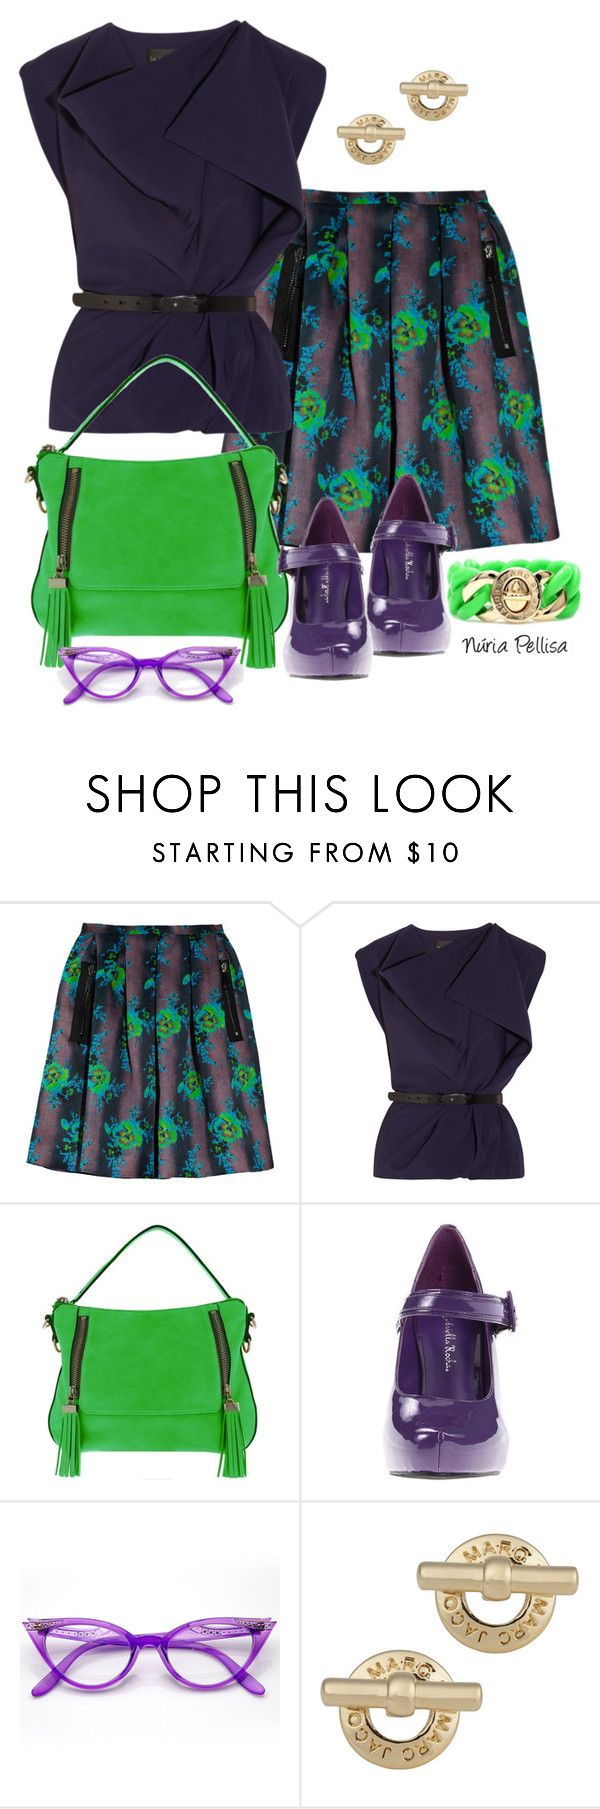 """""""Shirts with Belts"""" by nuria-pellisa-salvado ❤ liked on Polyvore featuring Christopher Kane, La Petite S*****, Melie Bianco, Gabriella Rocha and Marc by Marc Jacobs"""